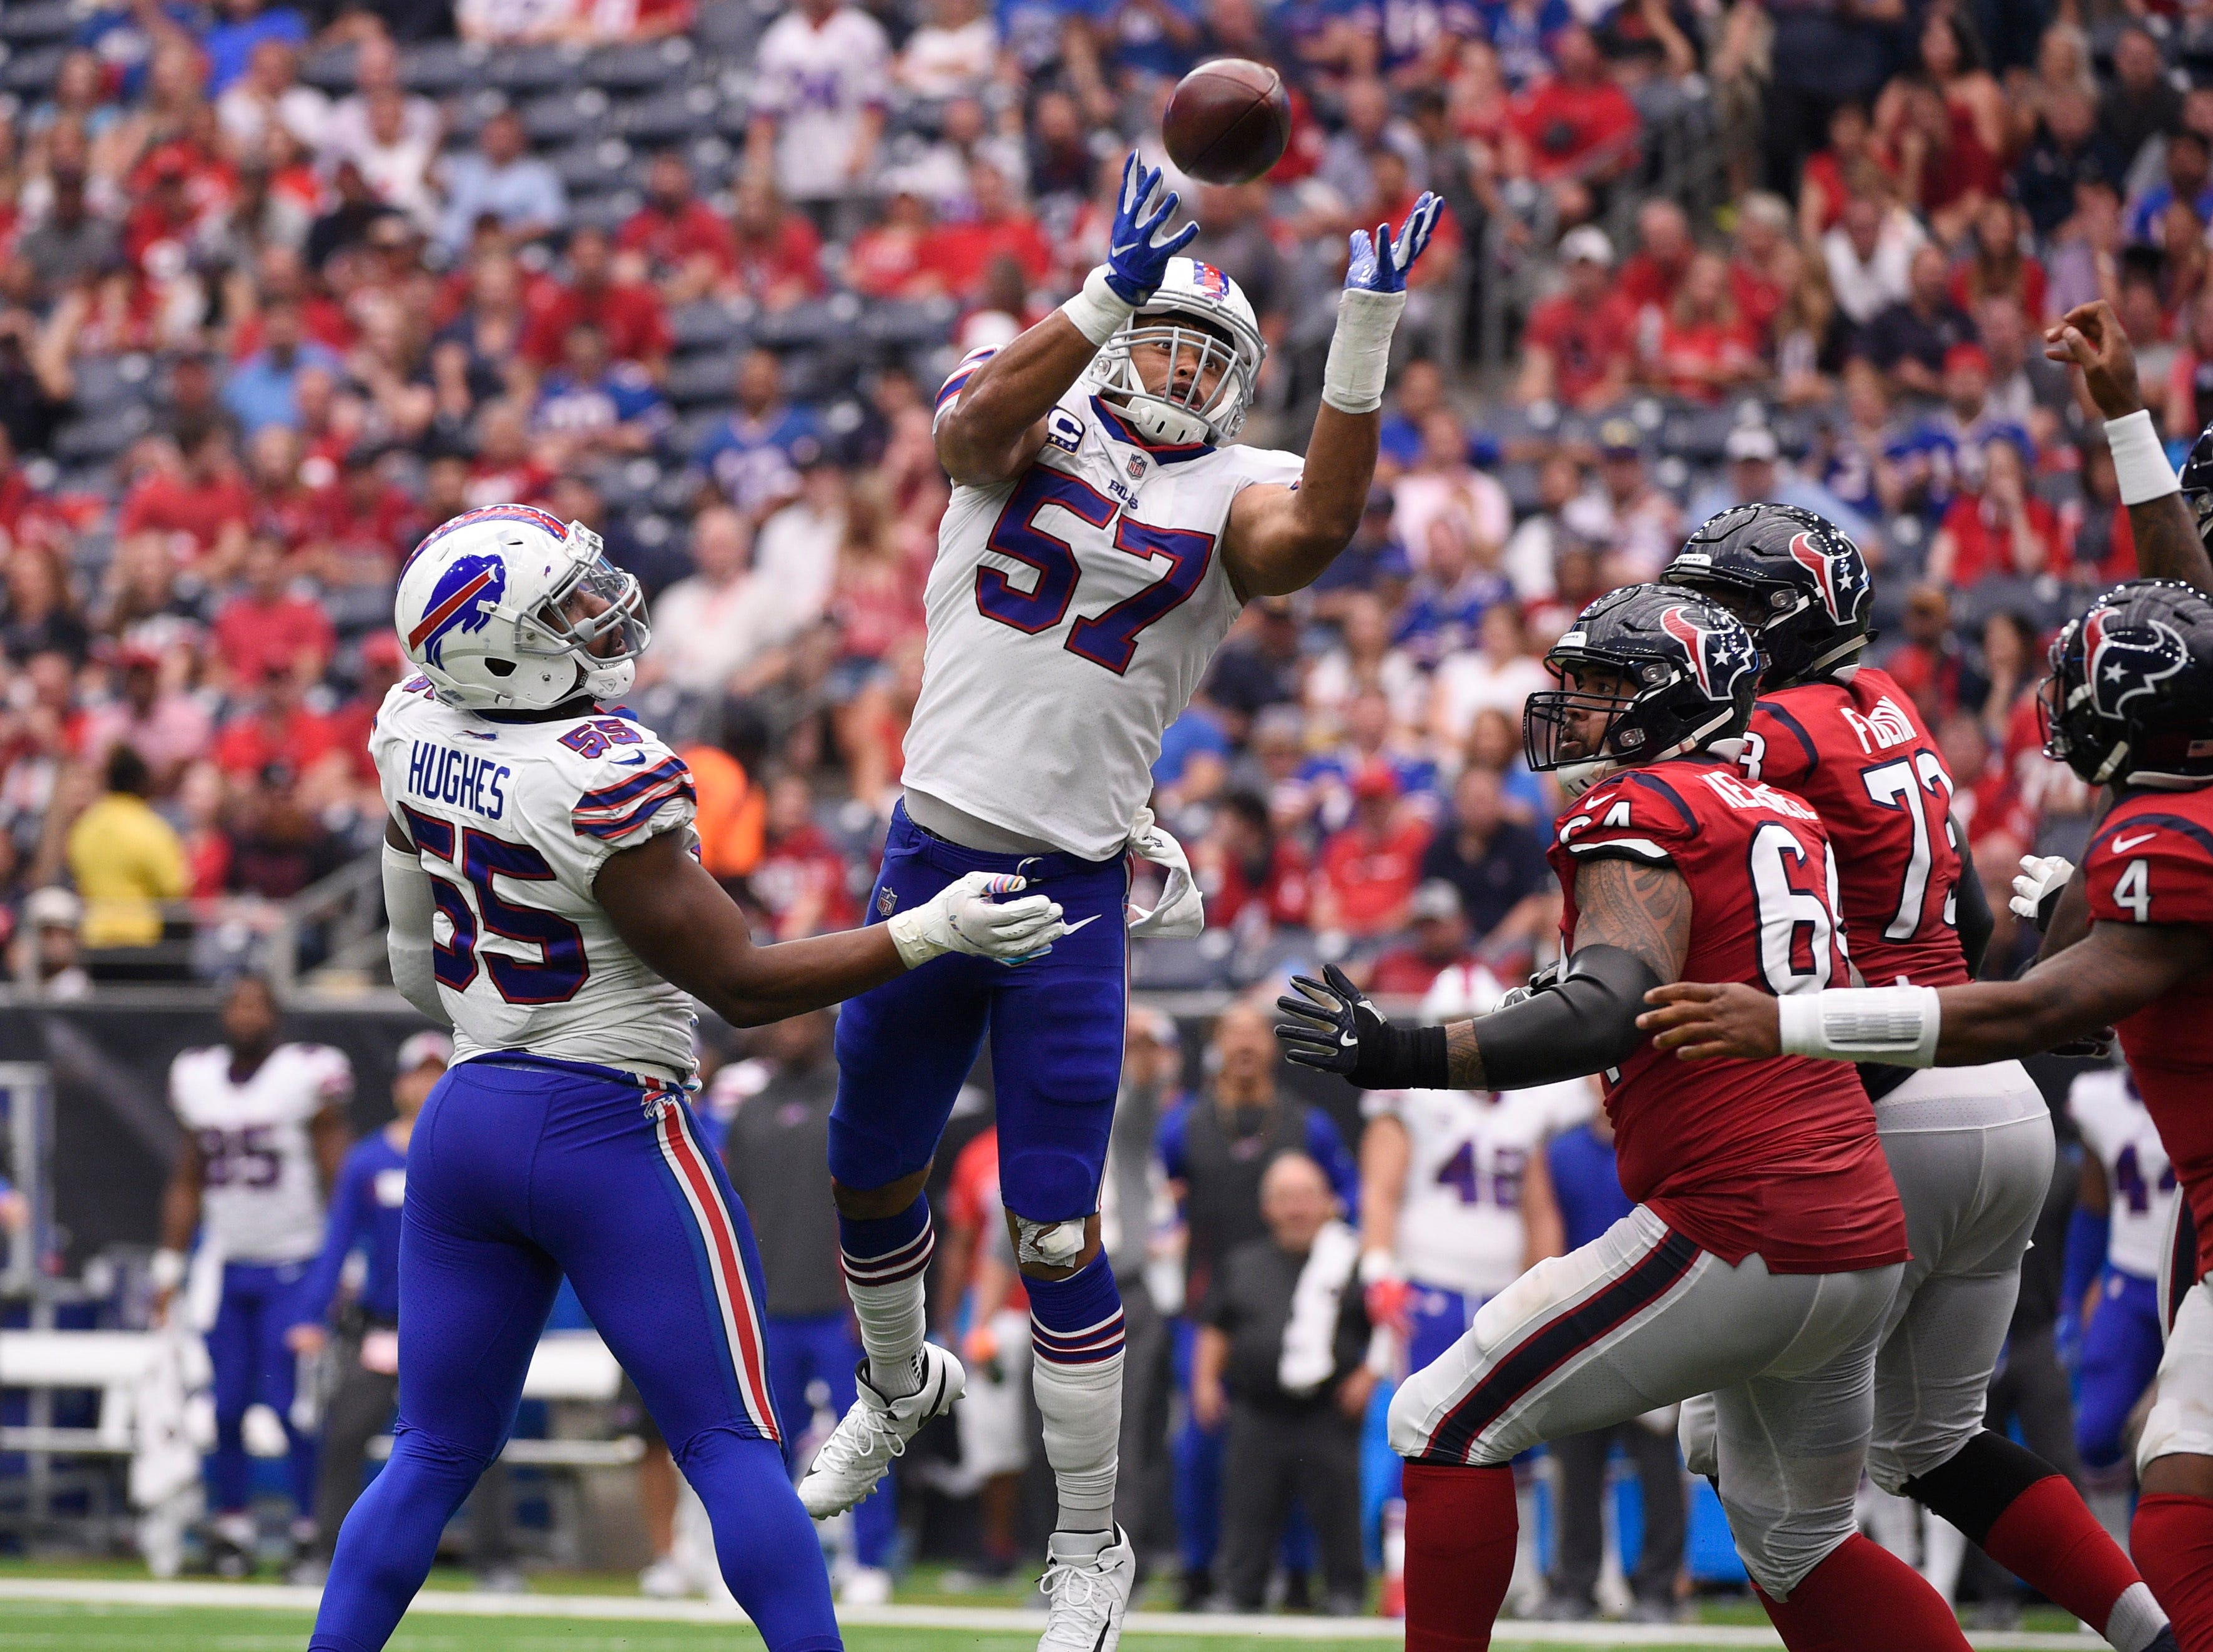 Buffalo Bills linebacker Lorenzo Alexander (57) intercepts a pass against the Houston Texans during the first quarter of an NFL football game, Sunday, Oct. 14, 2018, in Houston. (AP Photo/Eric Christian Smith)